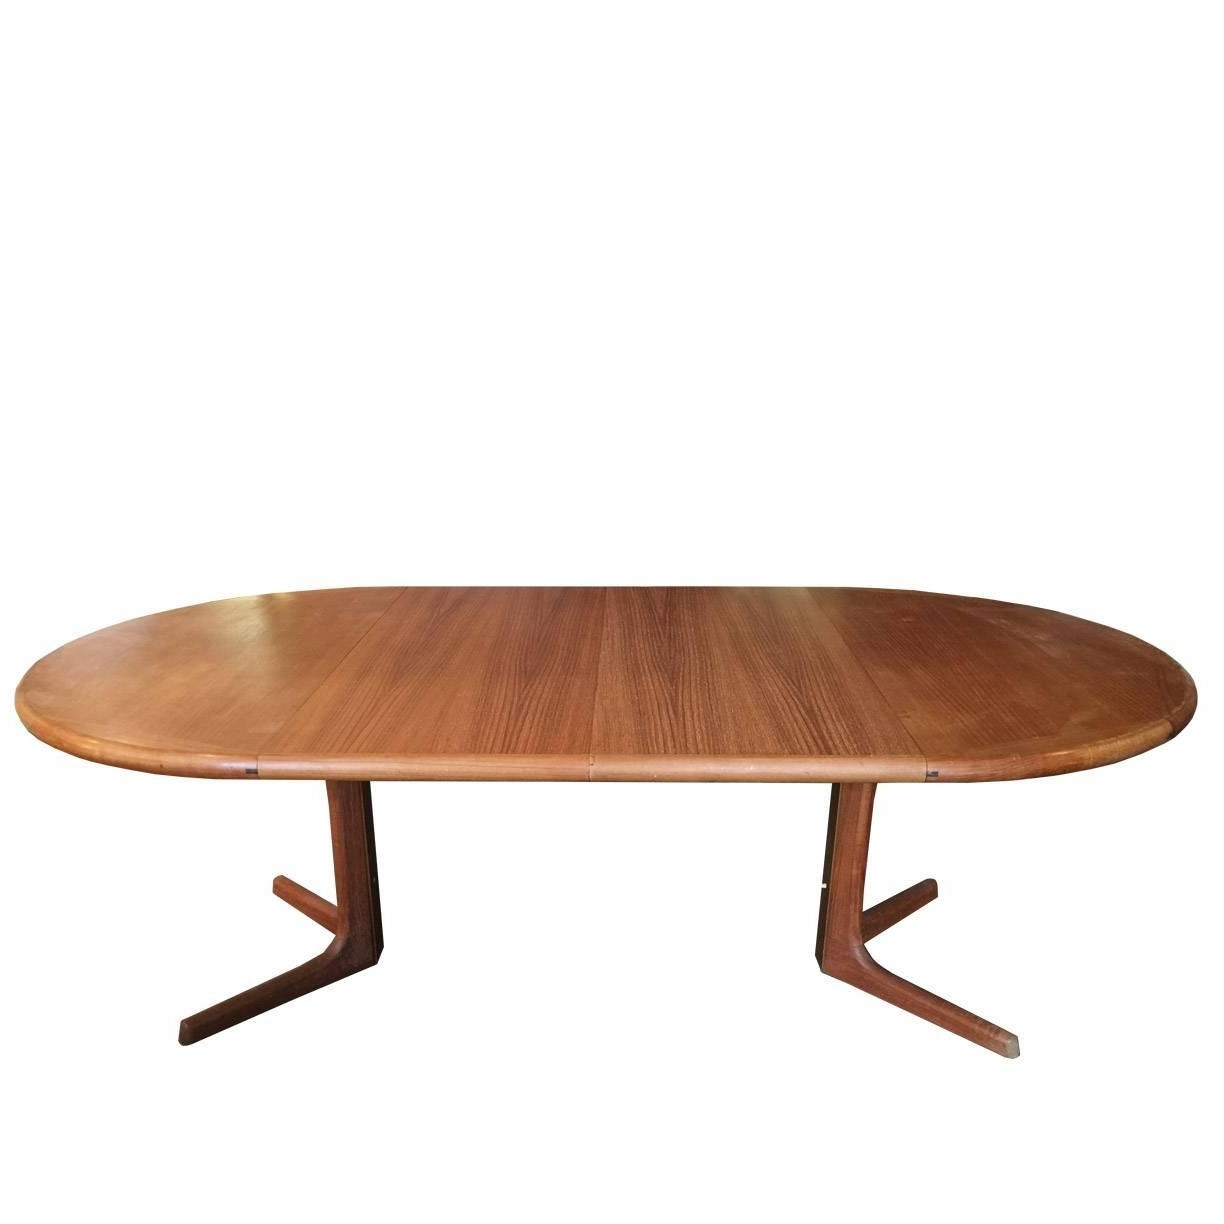 Well Liked Oval Danish Teak Dining Tabledrylund At 1Stdibs With Danish Dining Tables (View 25 of 25)